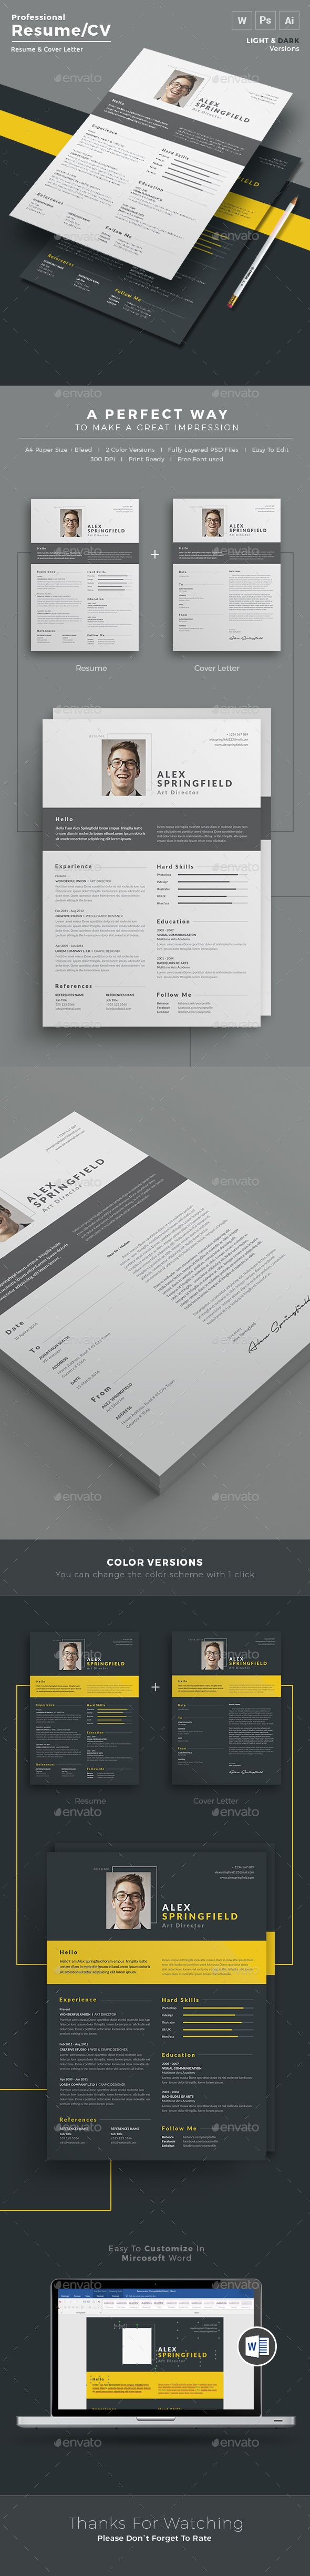 resume design cv template and cover letters resume resume word cv template super modern and professional look elegant page designs are easy to use and customize so you can quickly